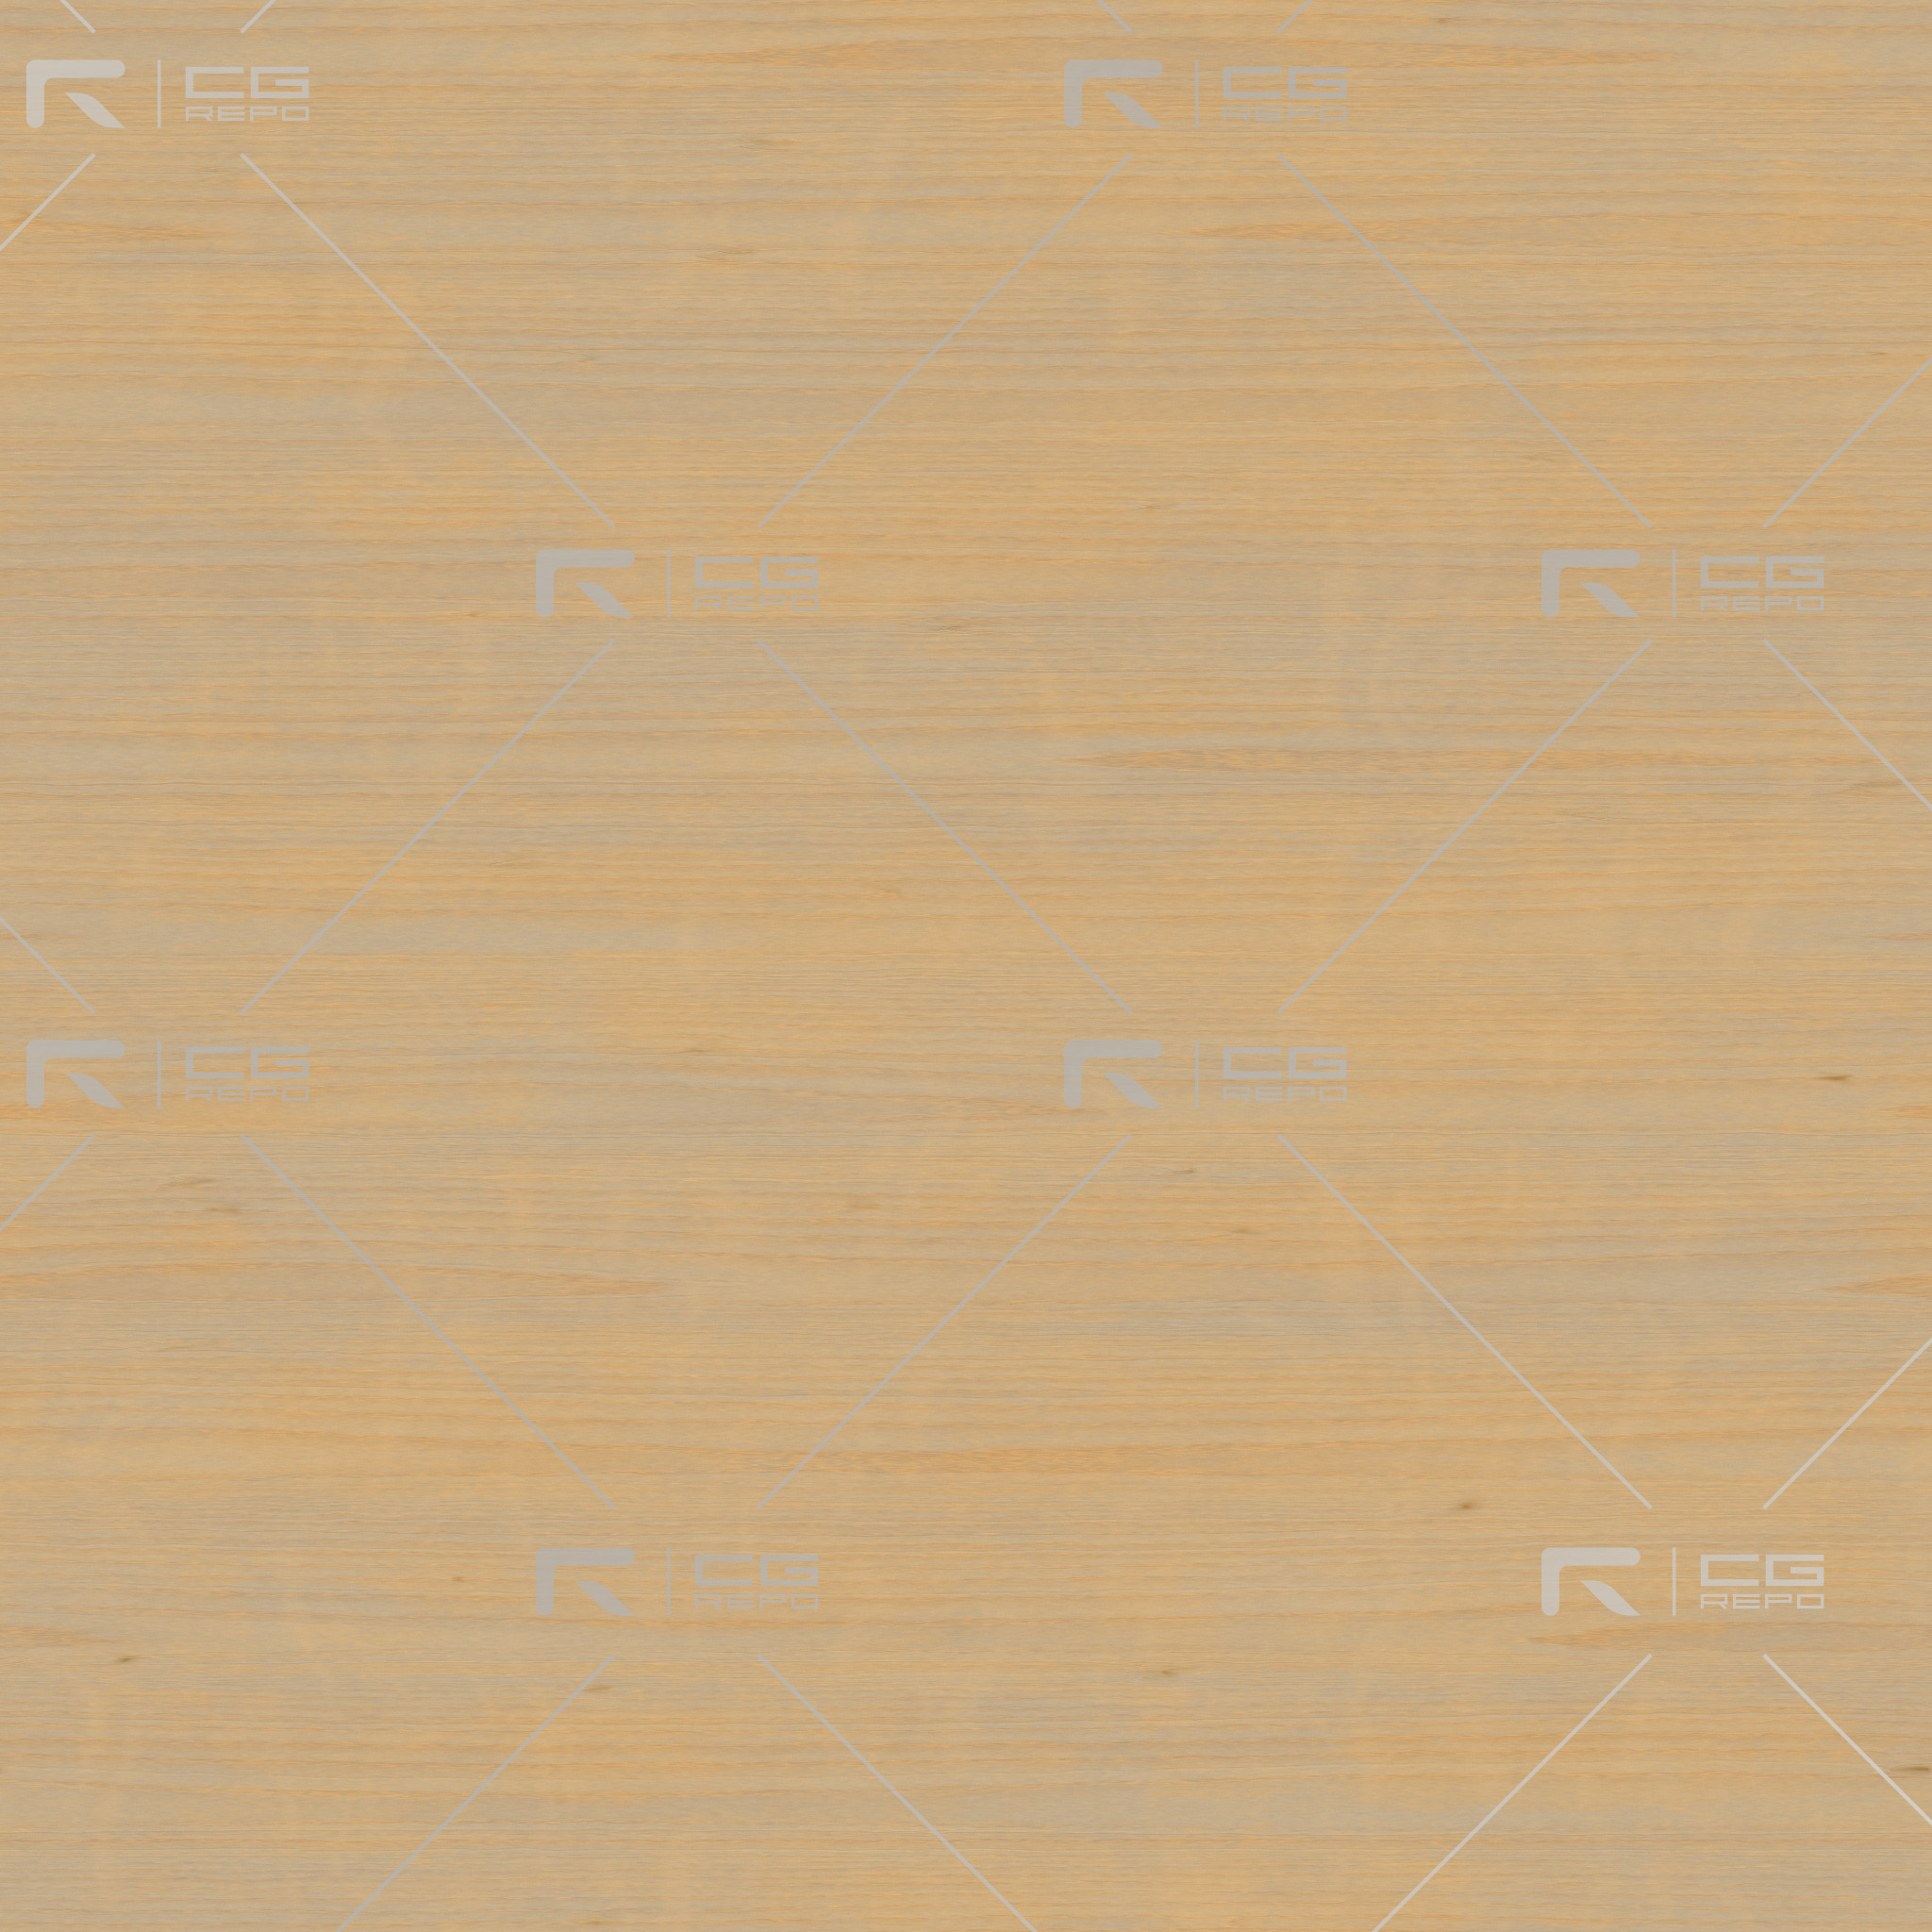 Birch - PlyWood - Rift BaseColor Texture